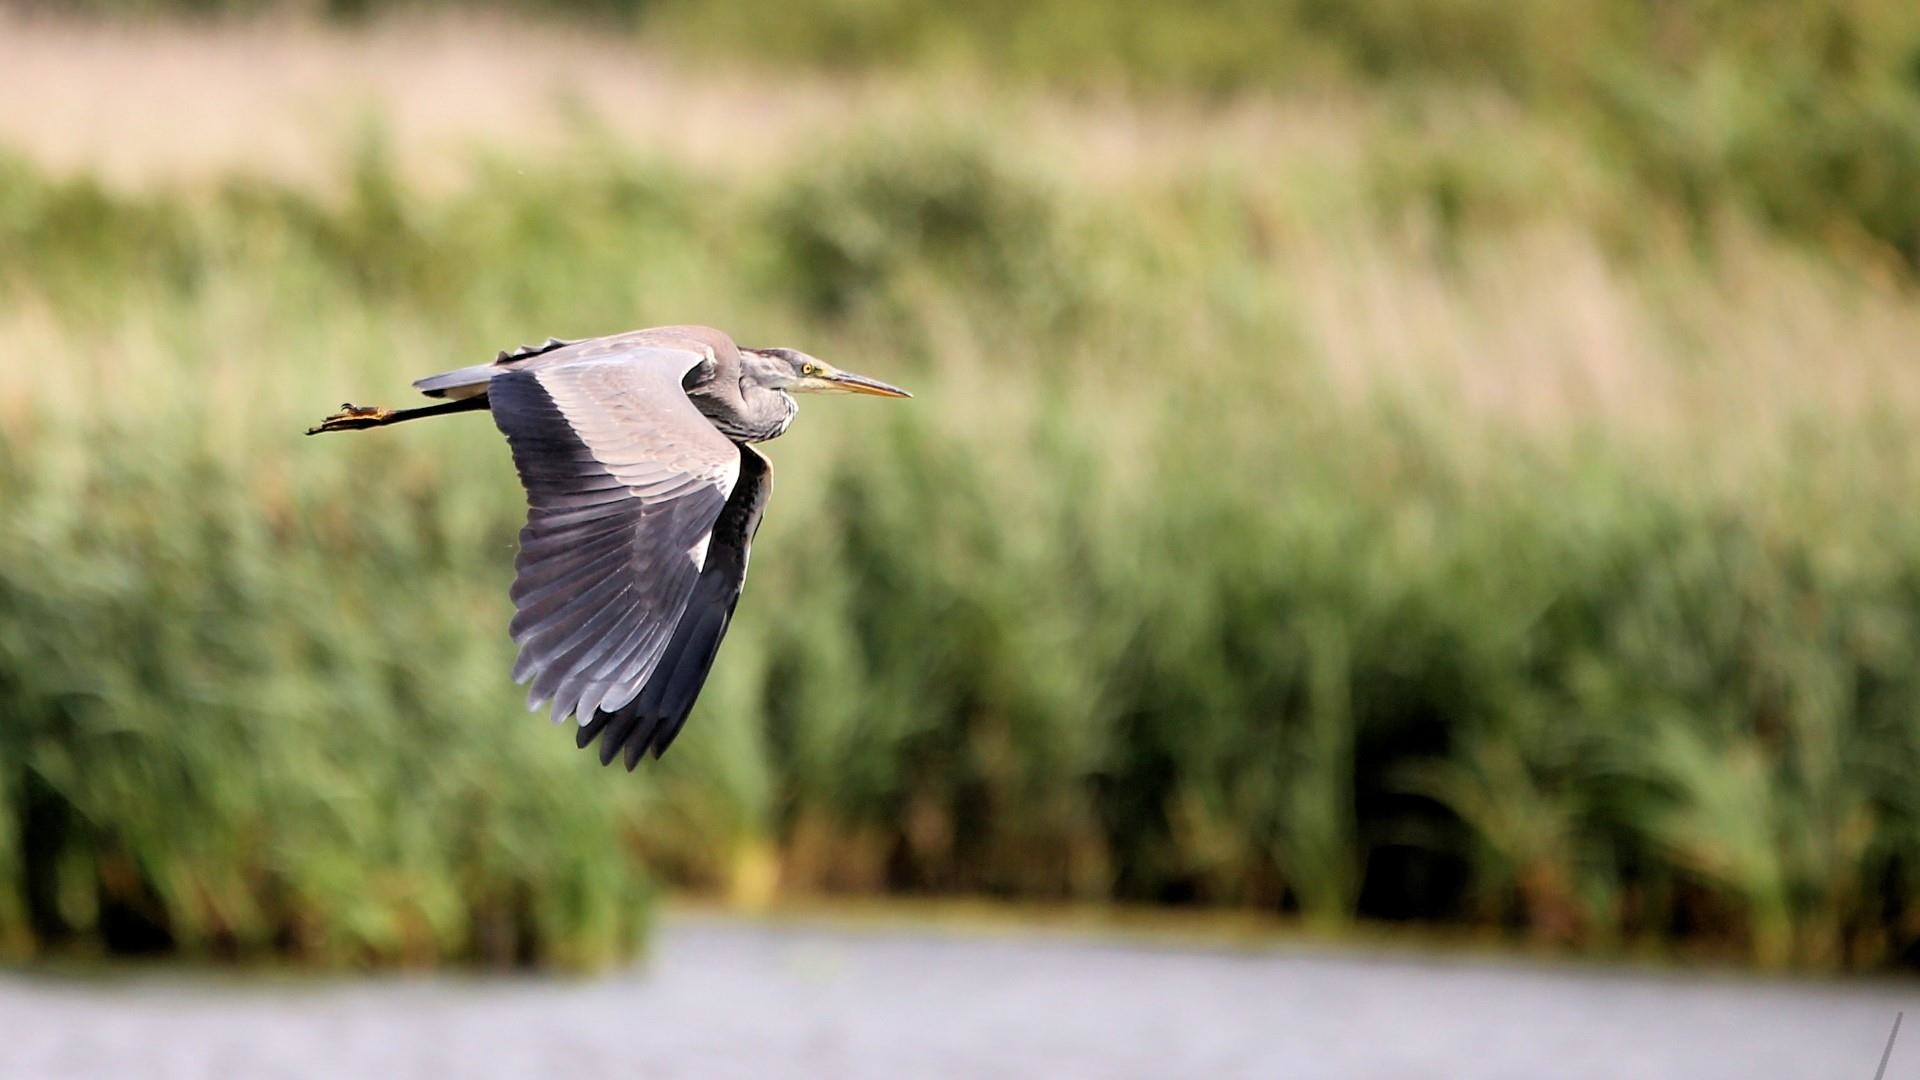 Res: 1920x1080, Grey Heron Wallpaper | Wallpaper Studio 10 | Tens of thousands HD and  UltraHD wallpapers for Android, Windows and Xbox